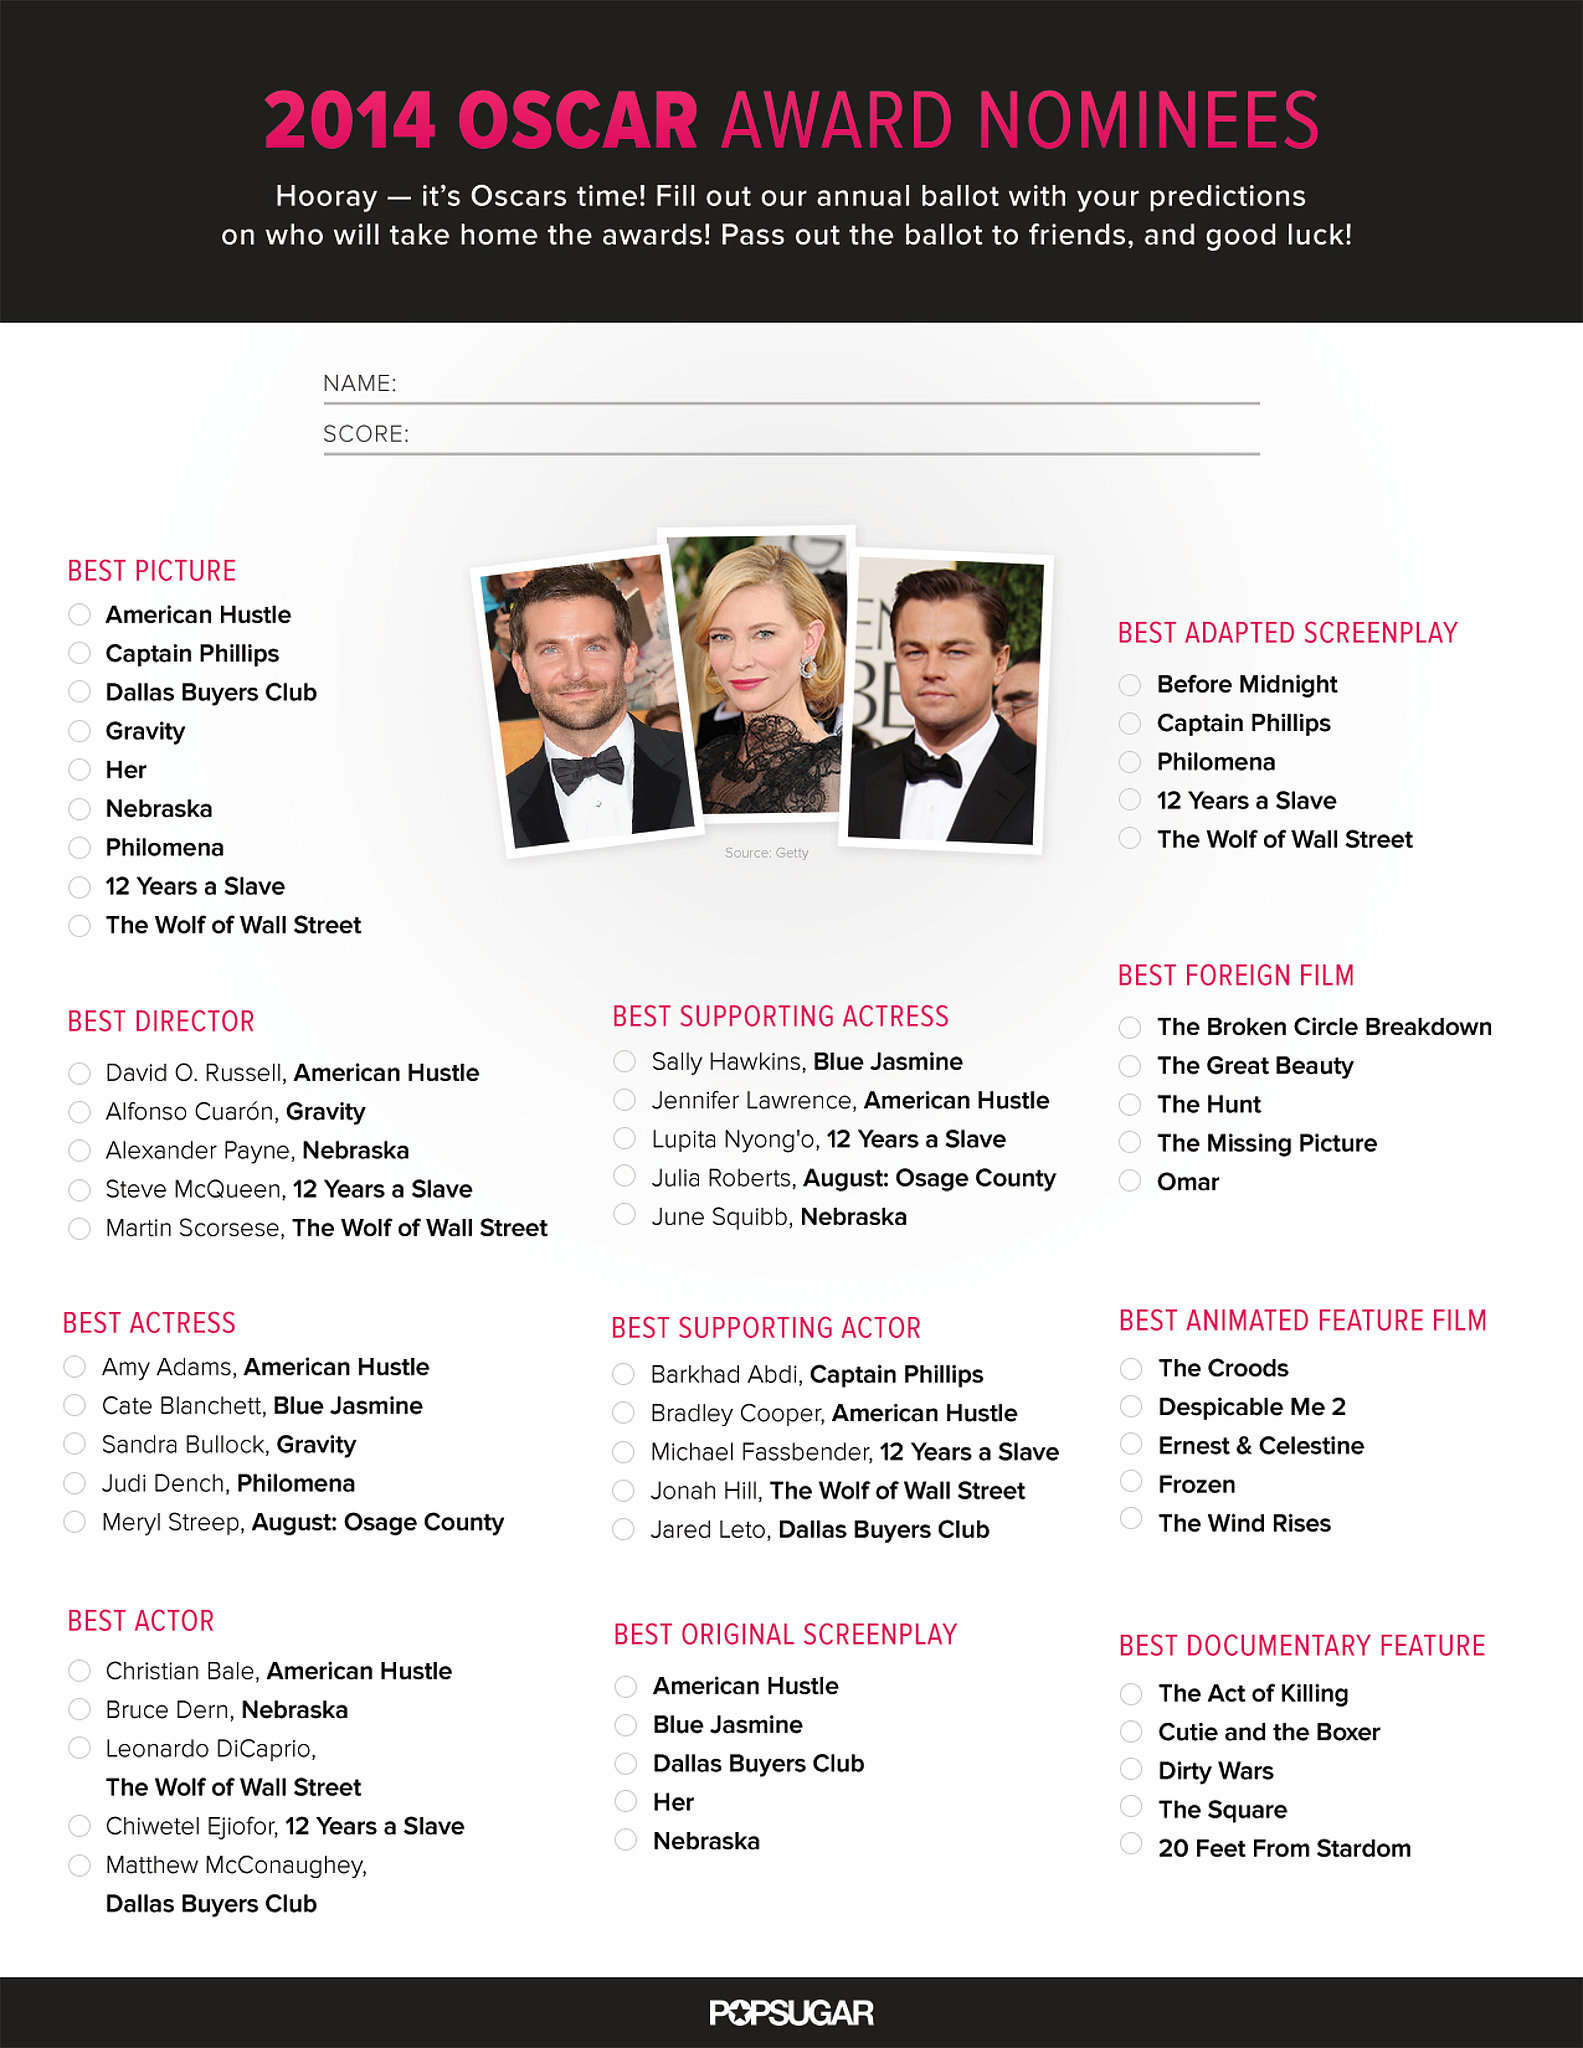 Oscar Ballot 2013 Printable 2013 Academy Awards Oscar Ballots Oscar further Prize Patrol Slots moreover Second Grade Reading additionally The 2017 Academy Awards Who Will Los Angeles Times furthermore Gatekeepers Israel S Secret Service 4280715. on oscar nominations 2013 list printable